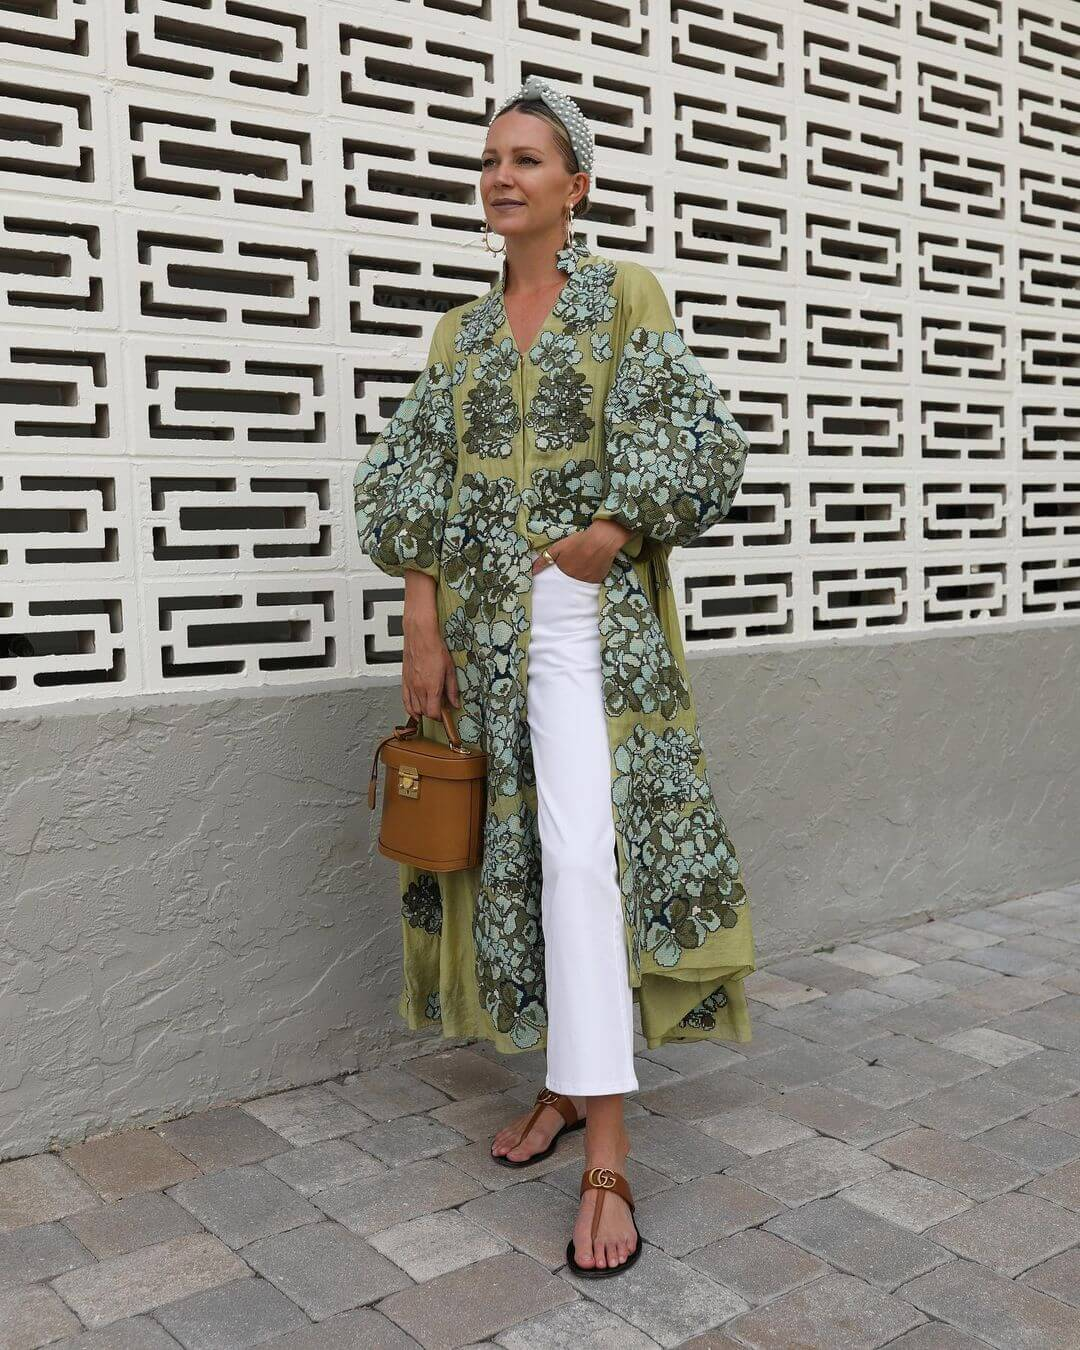 The Most Stylish Take On Dress Over Pants In 2021